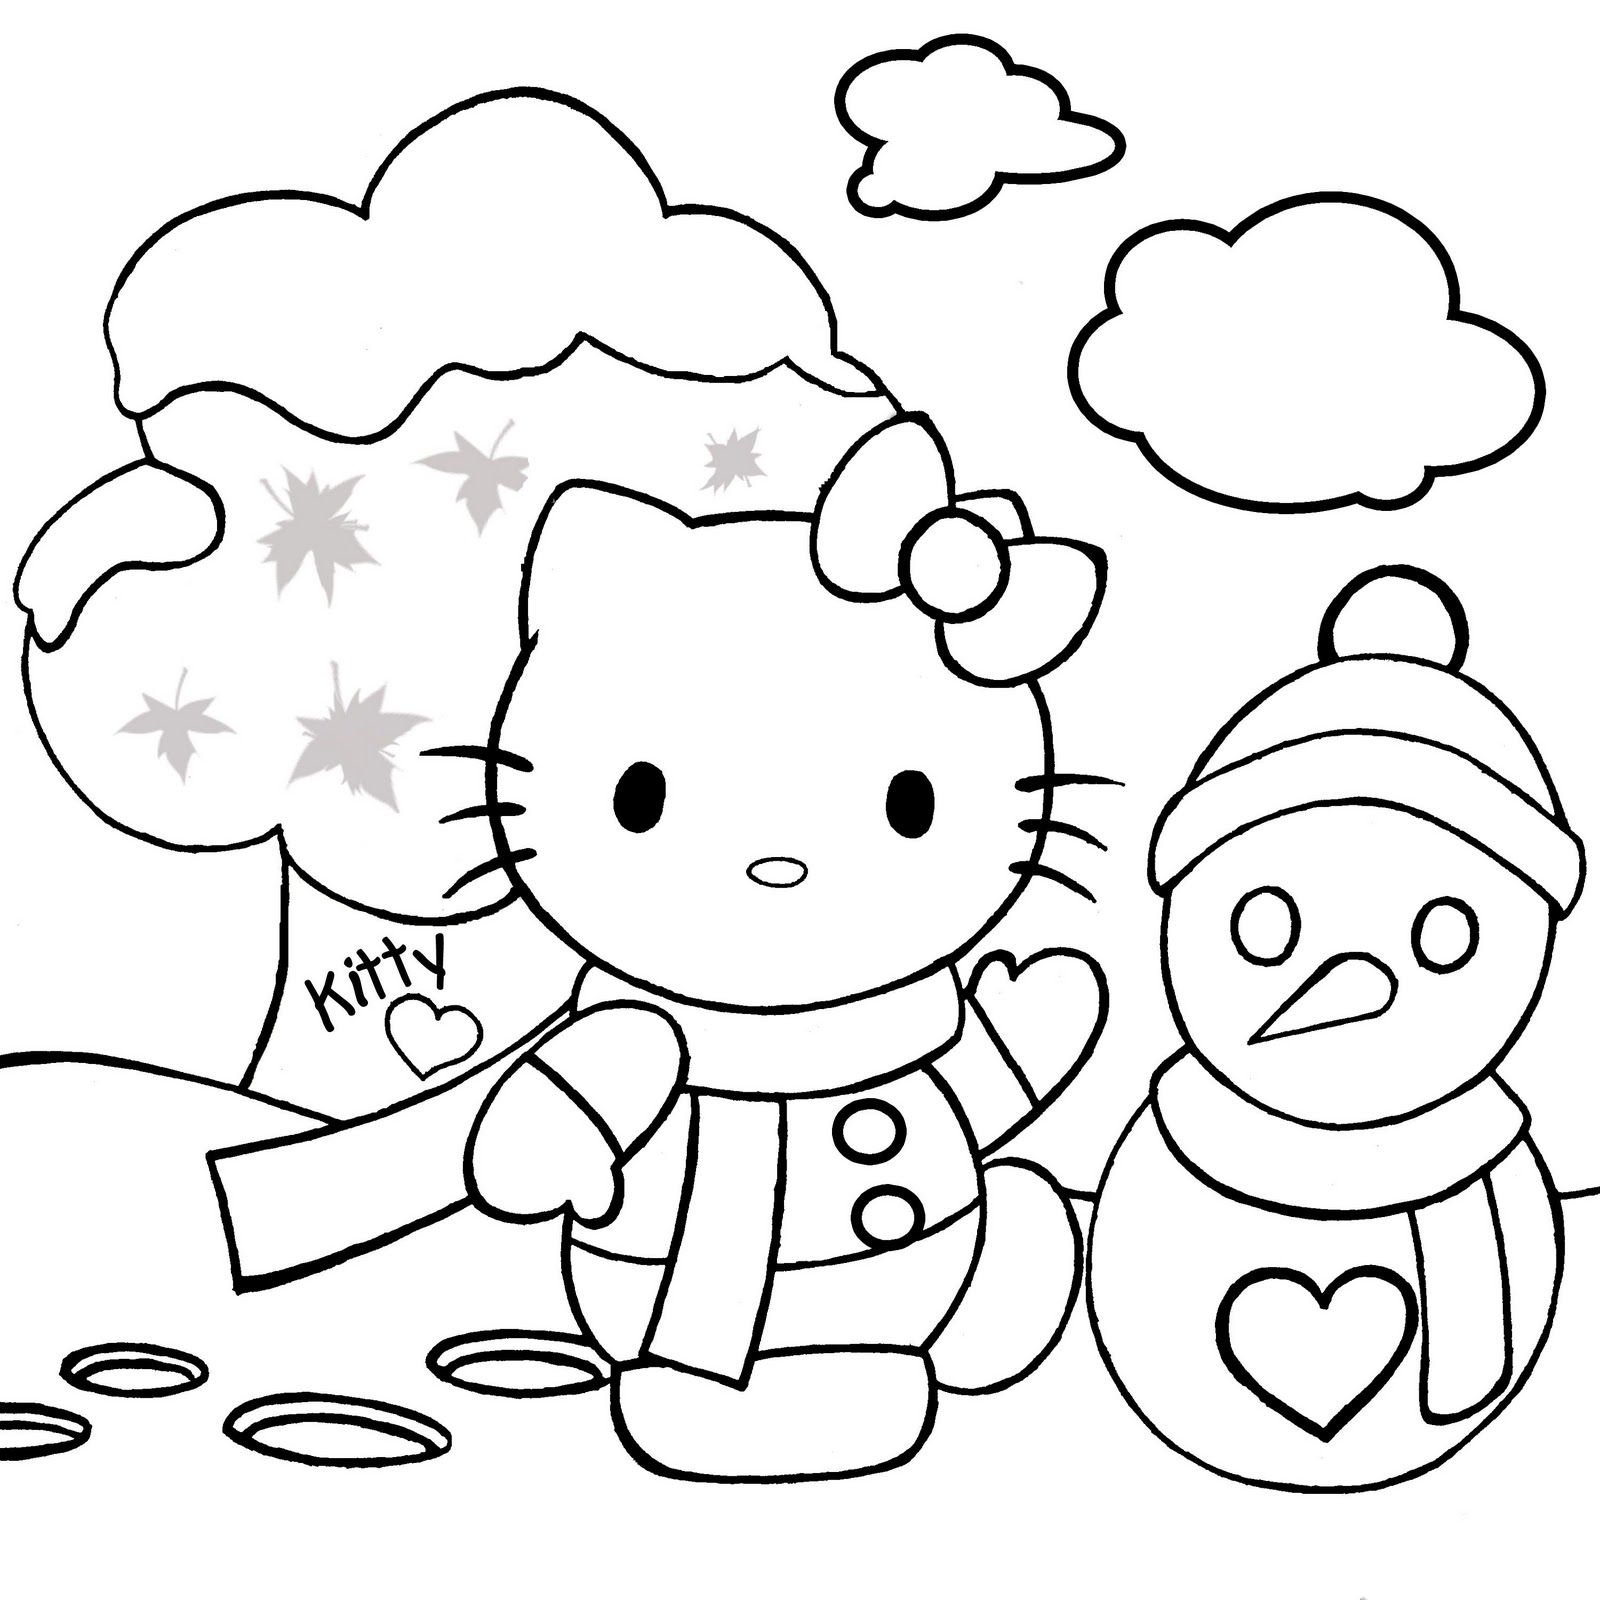 Christmas coloring activities printable - Hello Kitty Christmas Coloring Pages